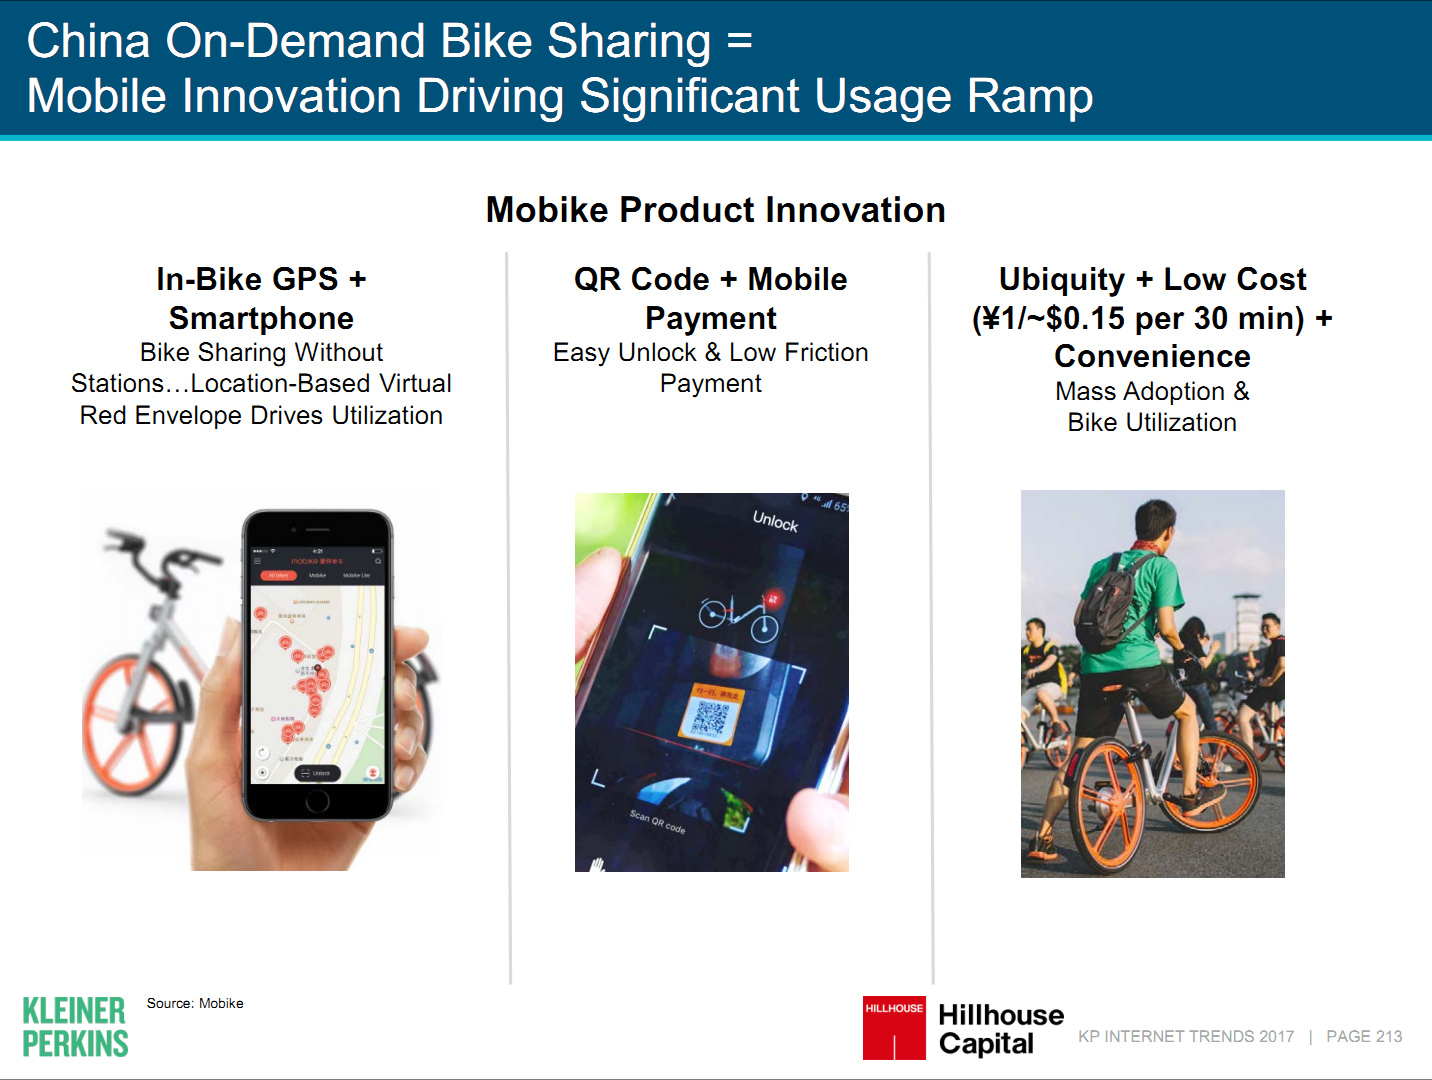 Mobile innovation driving bike sharing